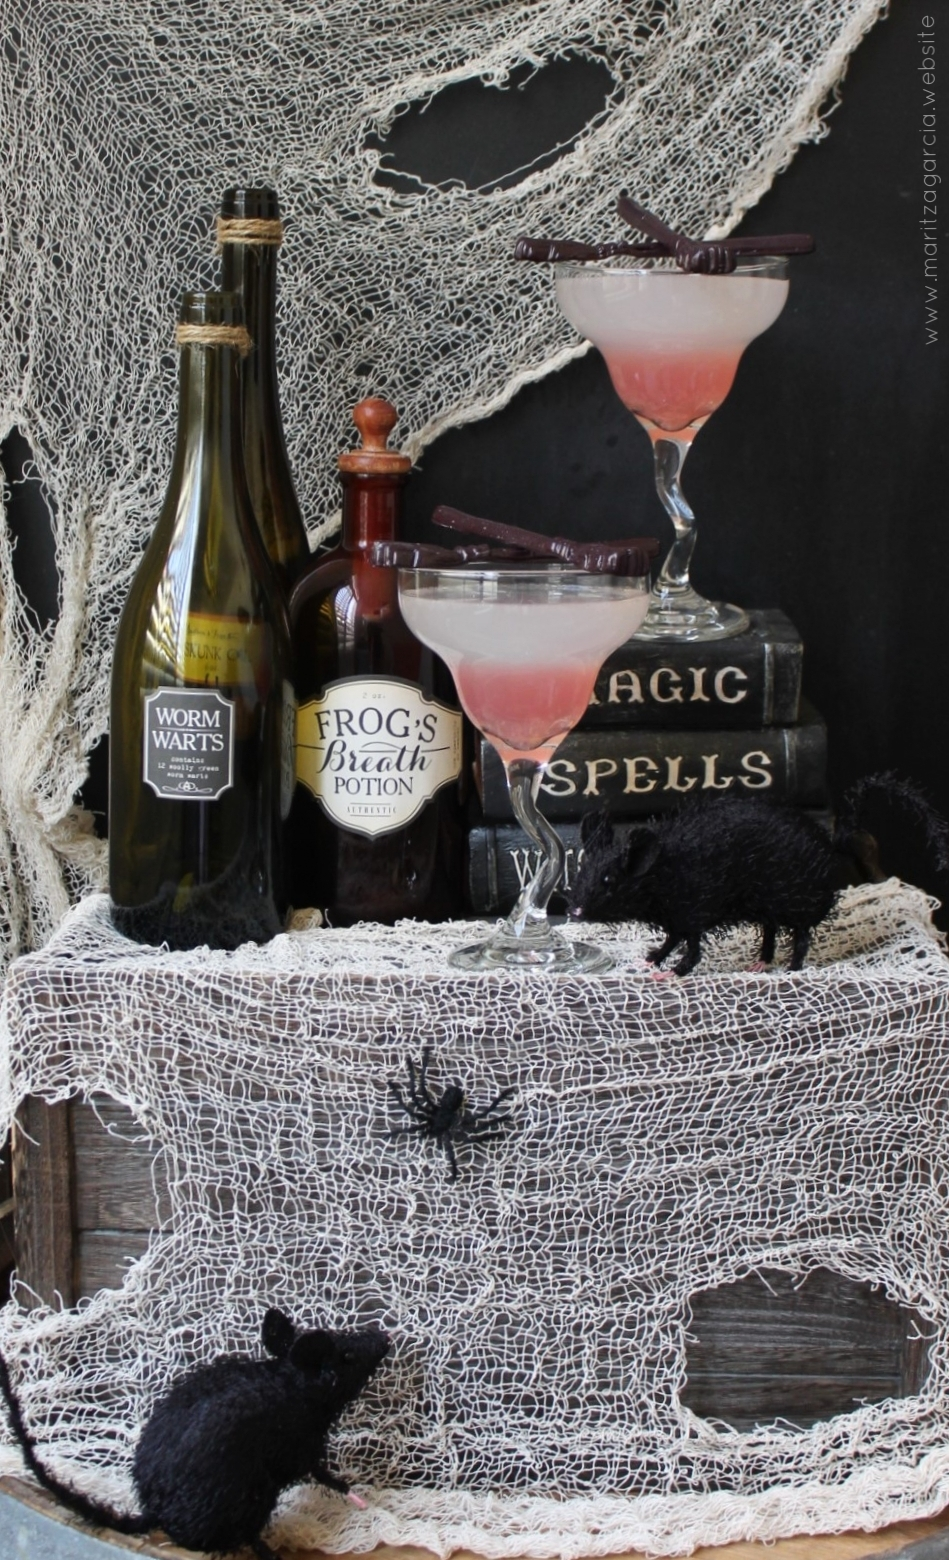 Witches Brew Cocktails with Vanilla Candy Brooms | www.maritzagarcia.website